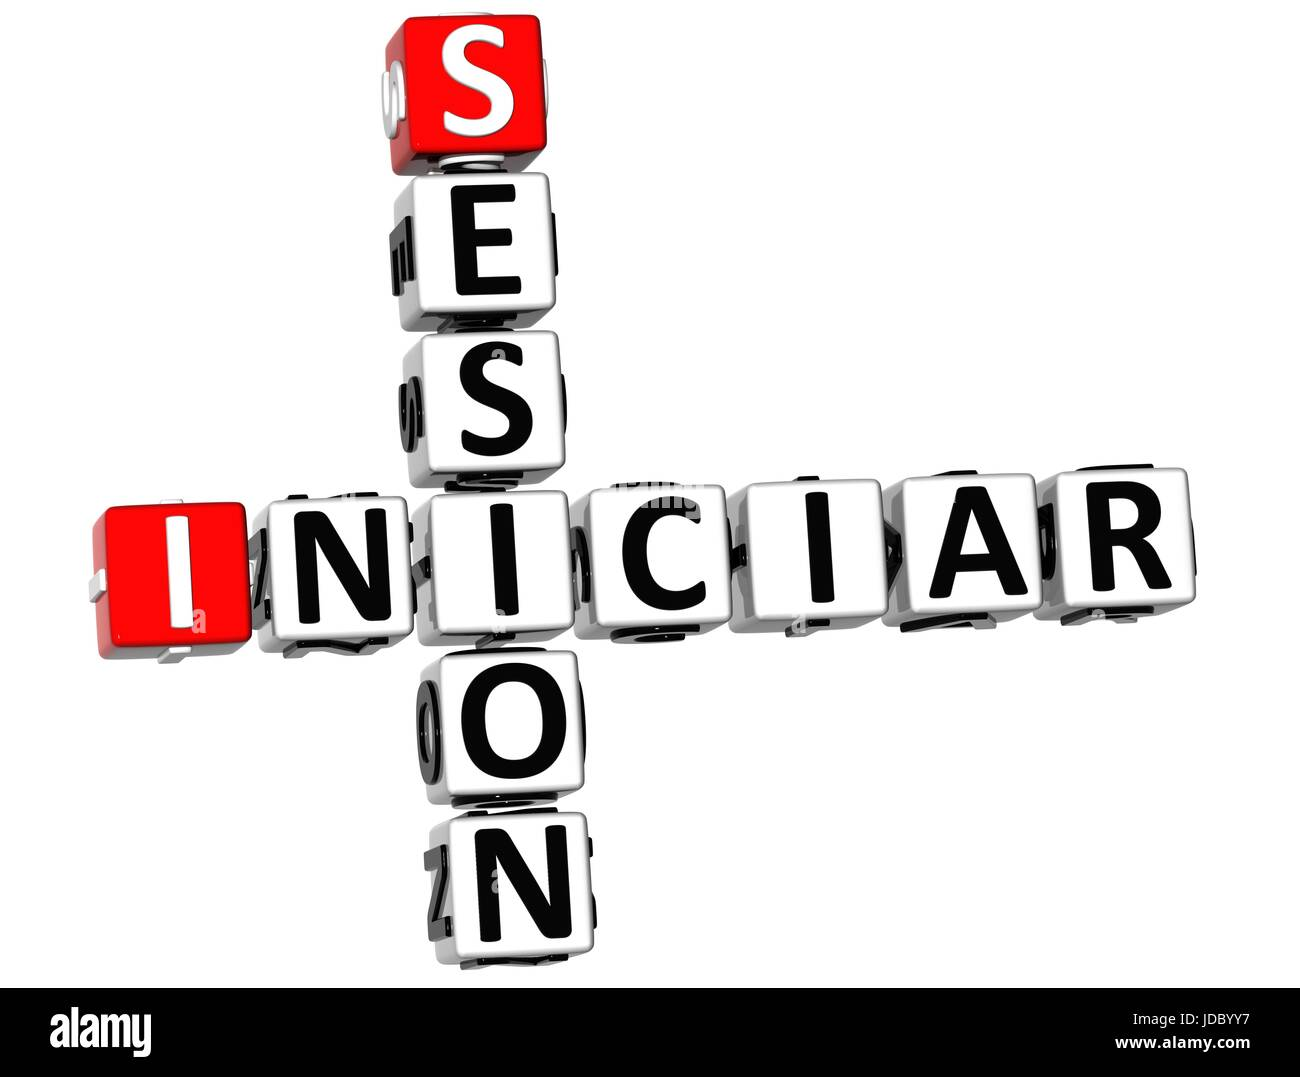 3D Iniciar Sesion Crossword on white background - Stock Image